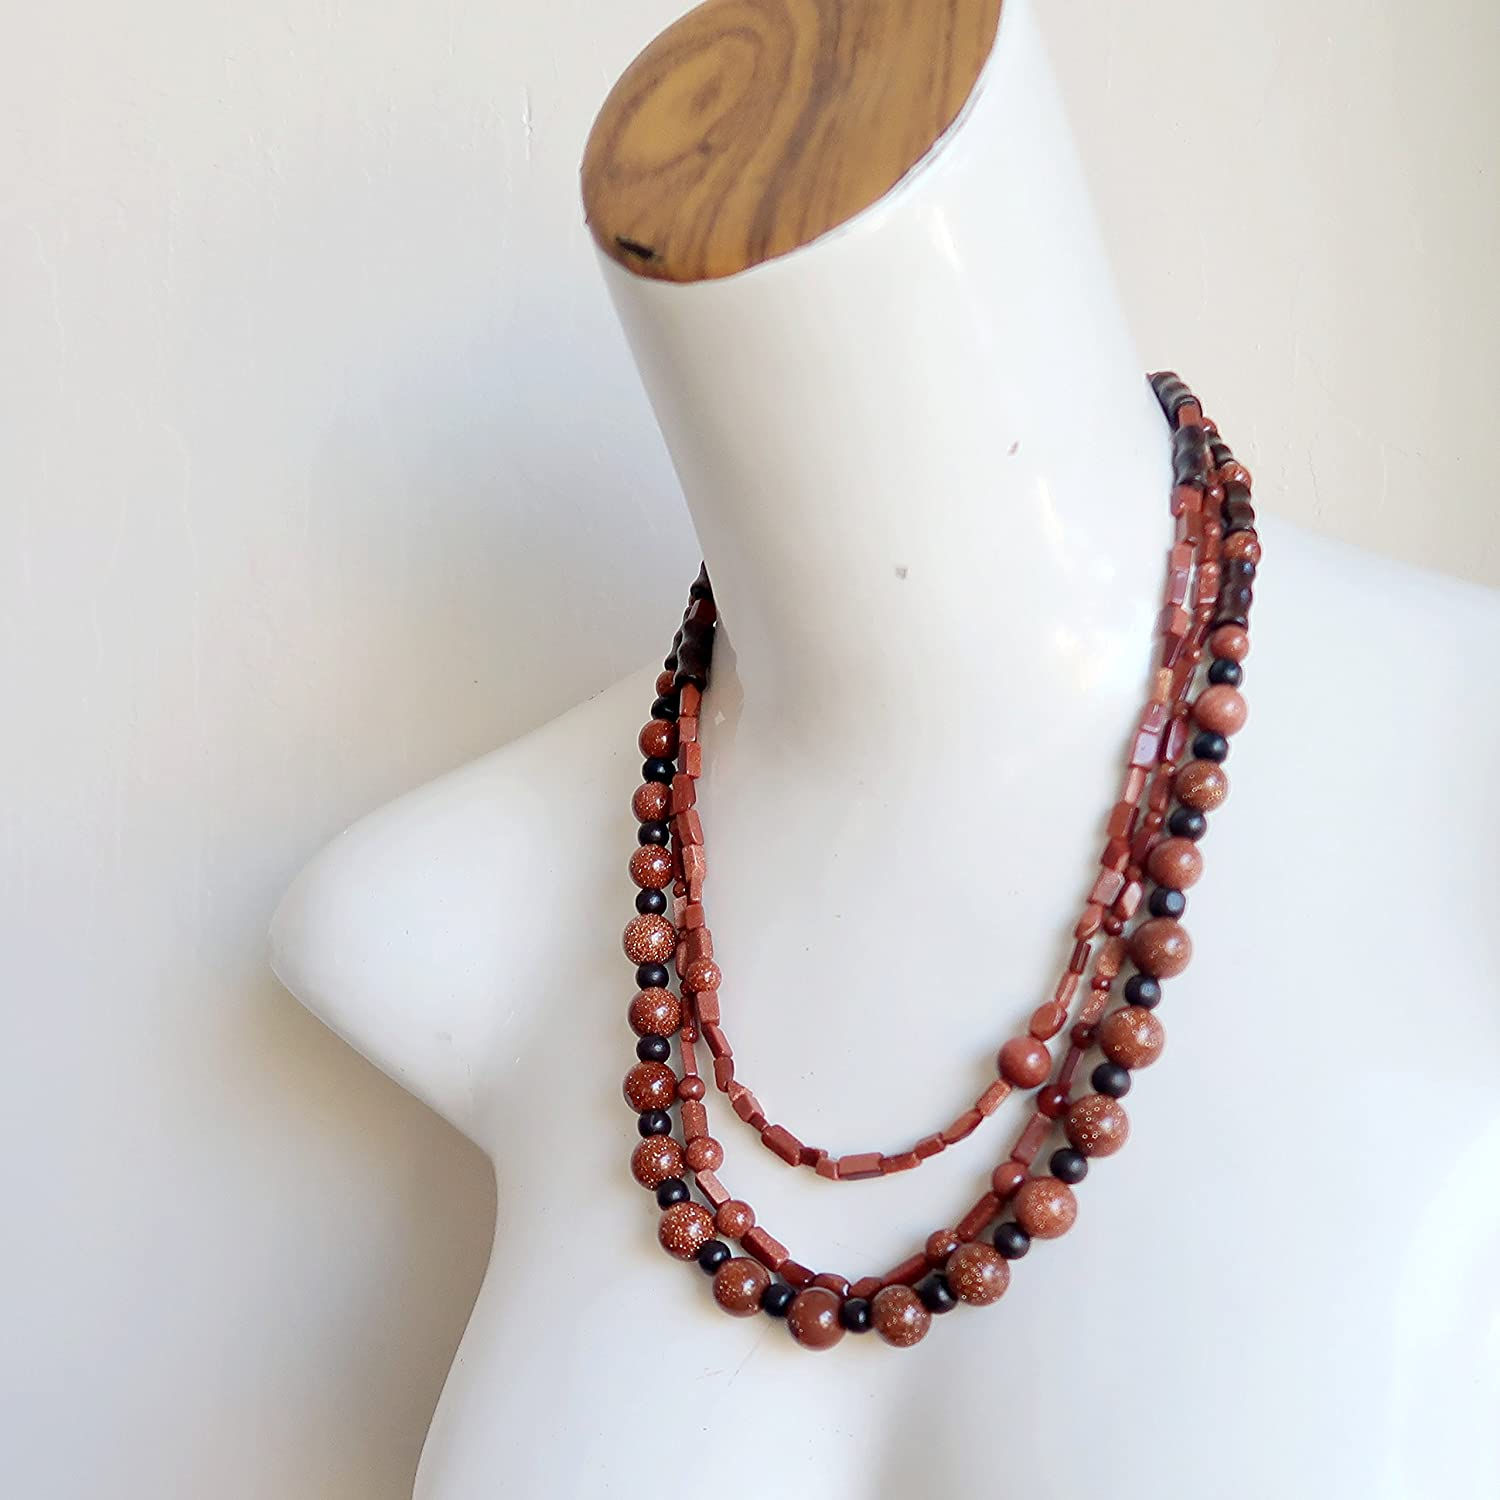 SatinCrystals Goldstone Necklace 18 Specialty Triple Strand Glittering Beaded Brown Wood Handmade in USA Multi-Layer S01